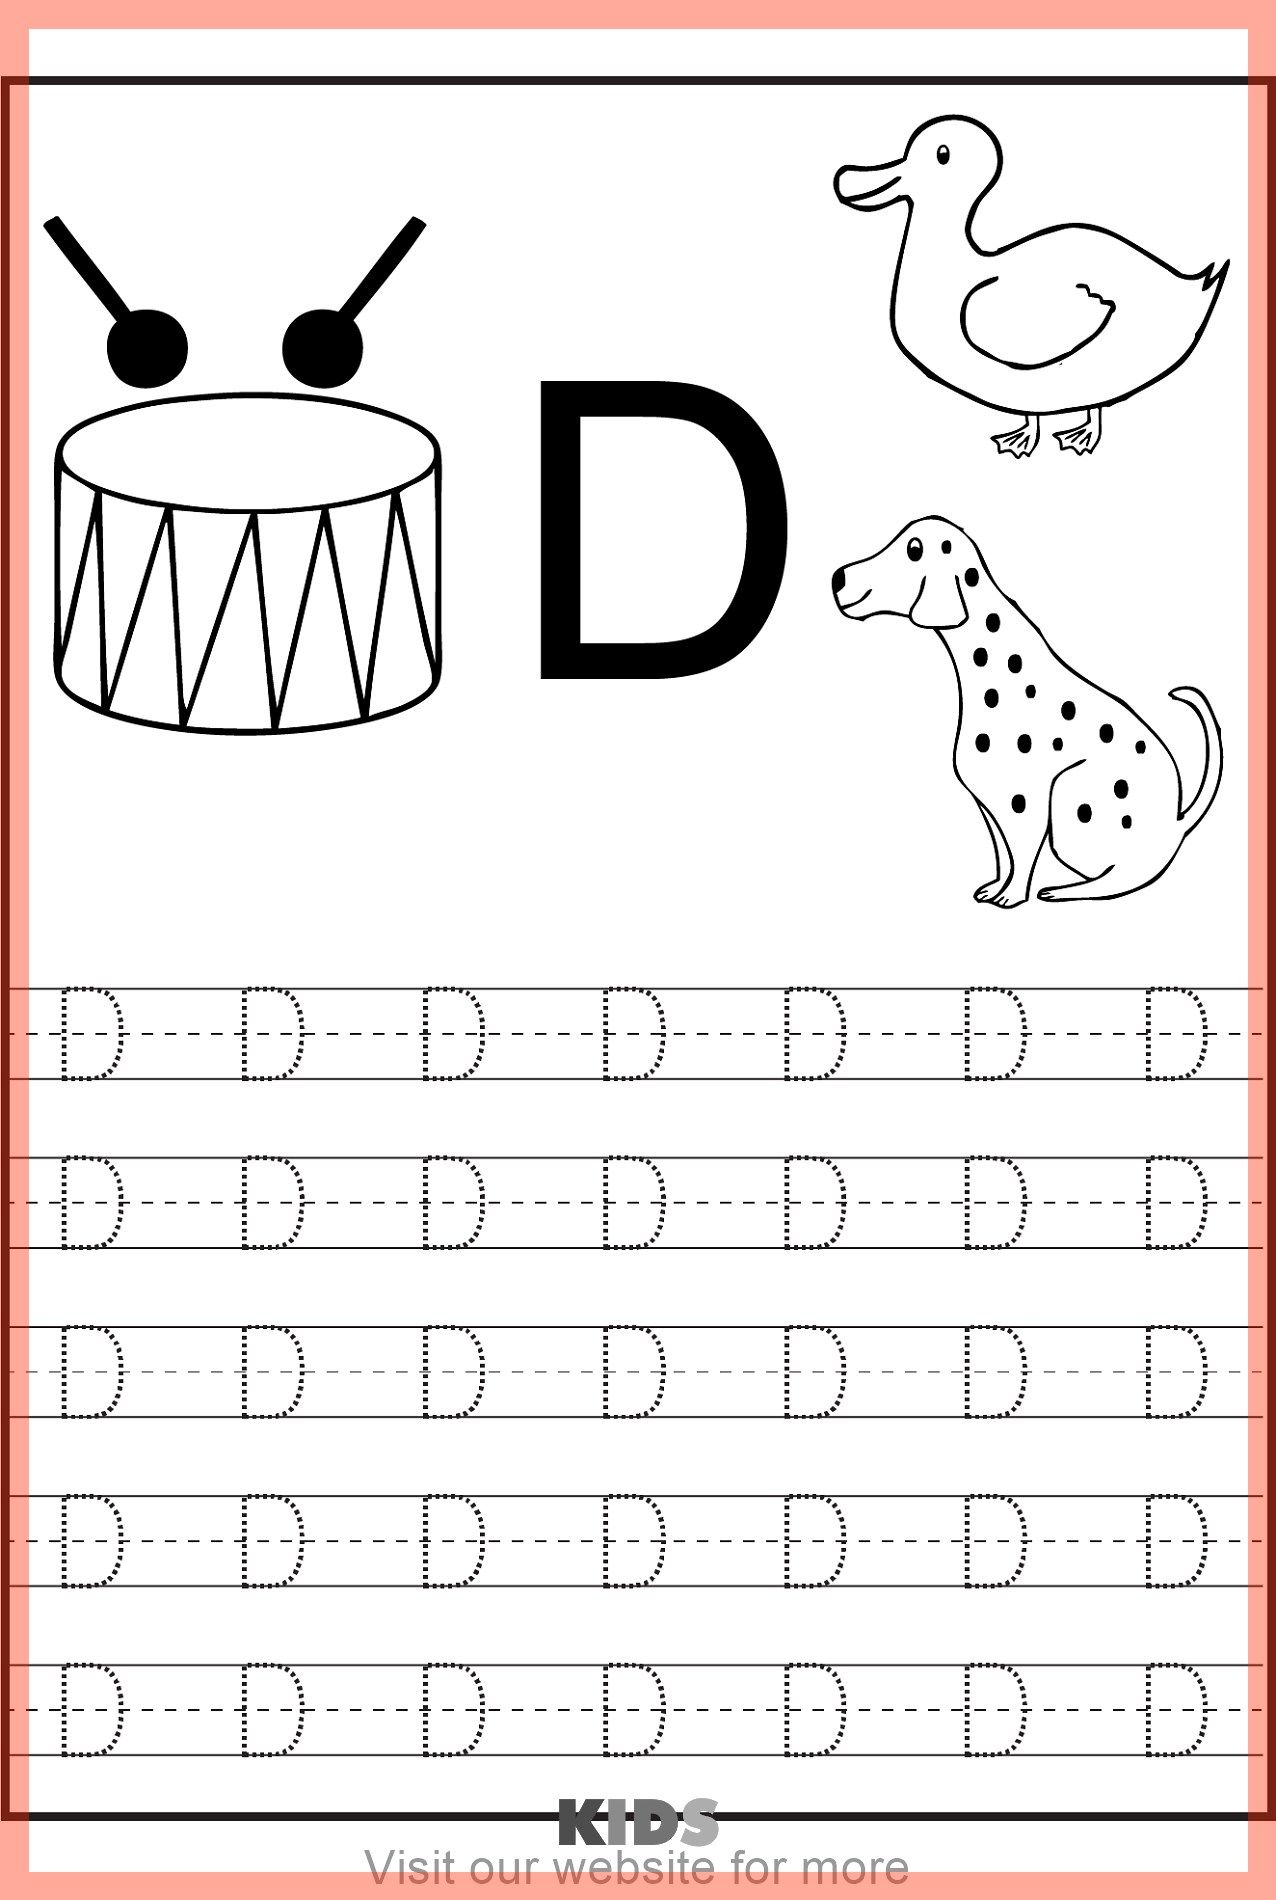 Sight Word Worksheet For Kids Best In